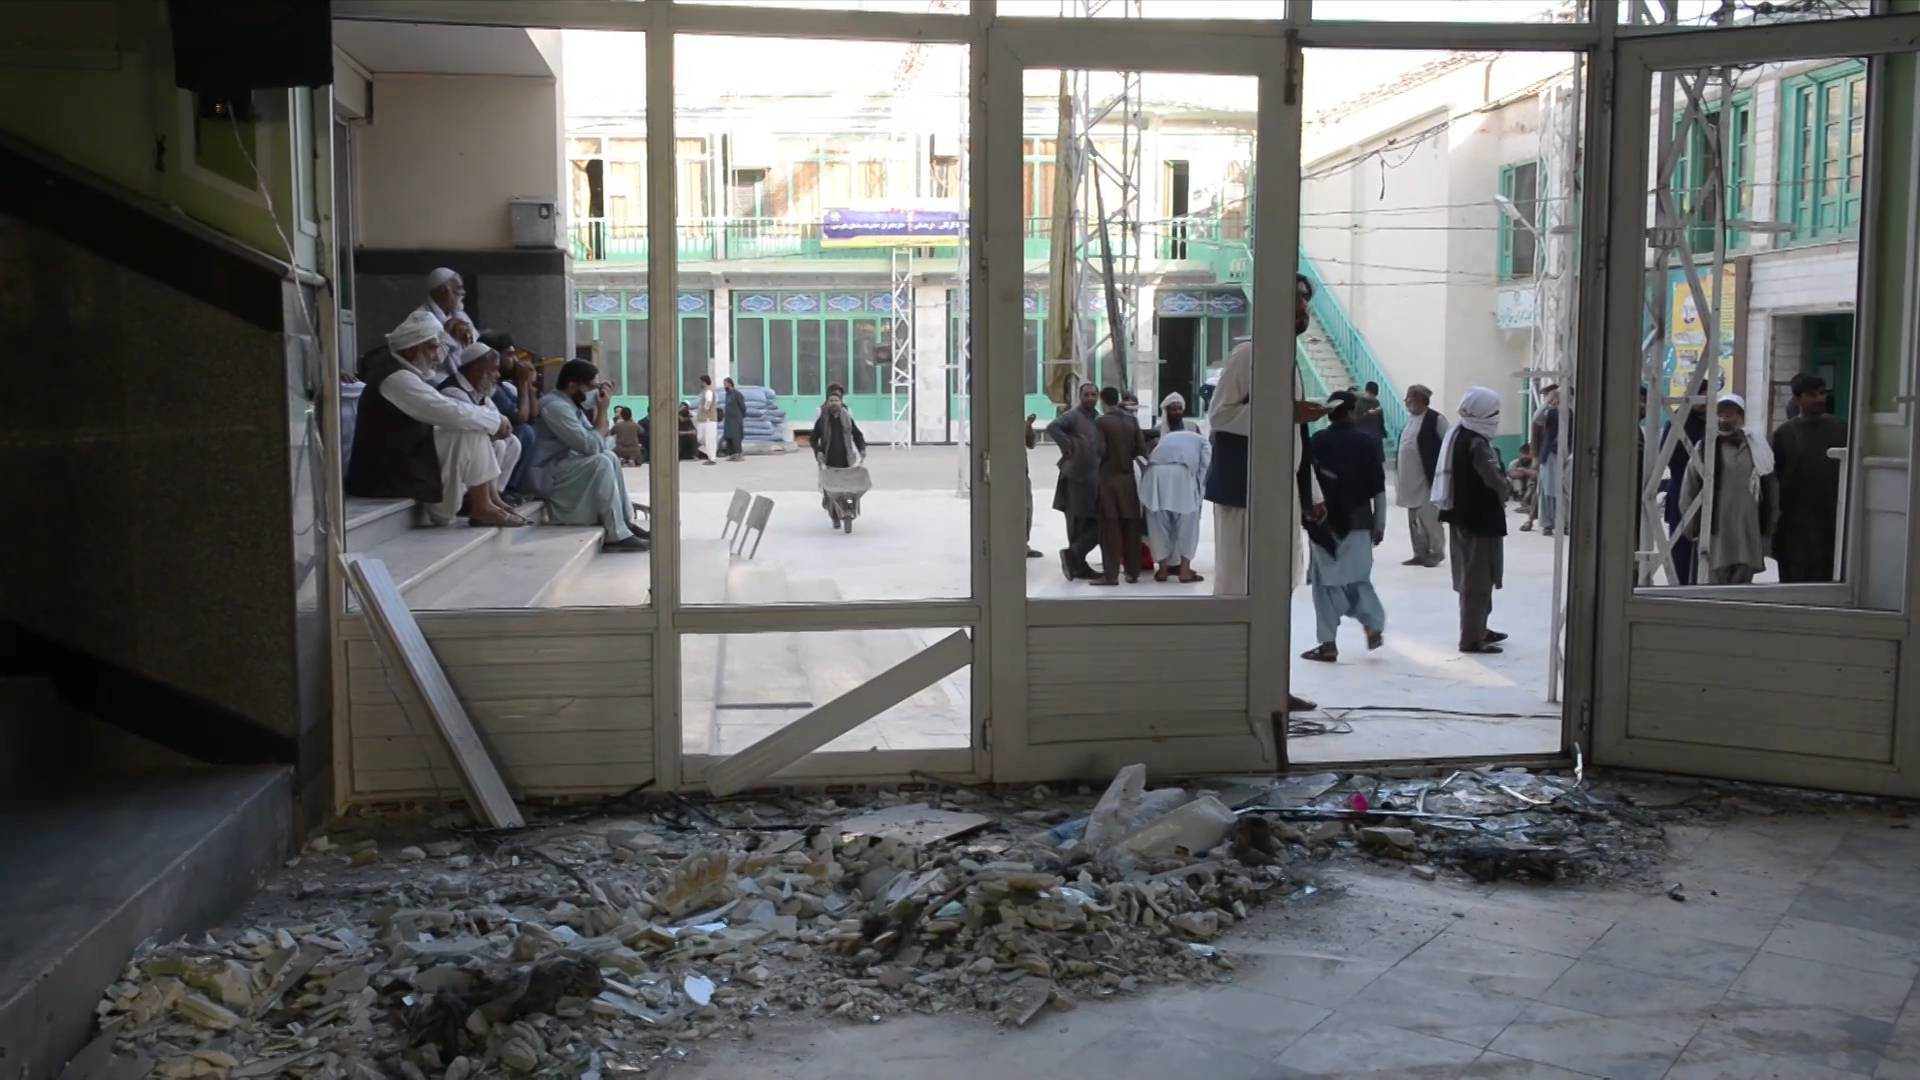 GLOBALink | IS group claims mosque explosions in Afghanistan as death toll soars to 47